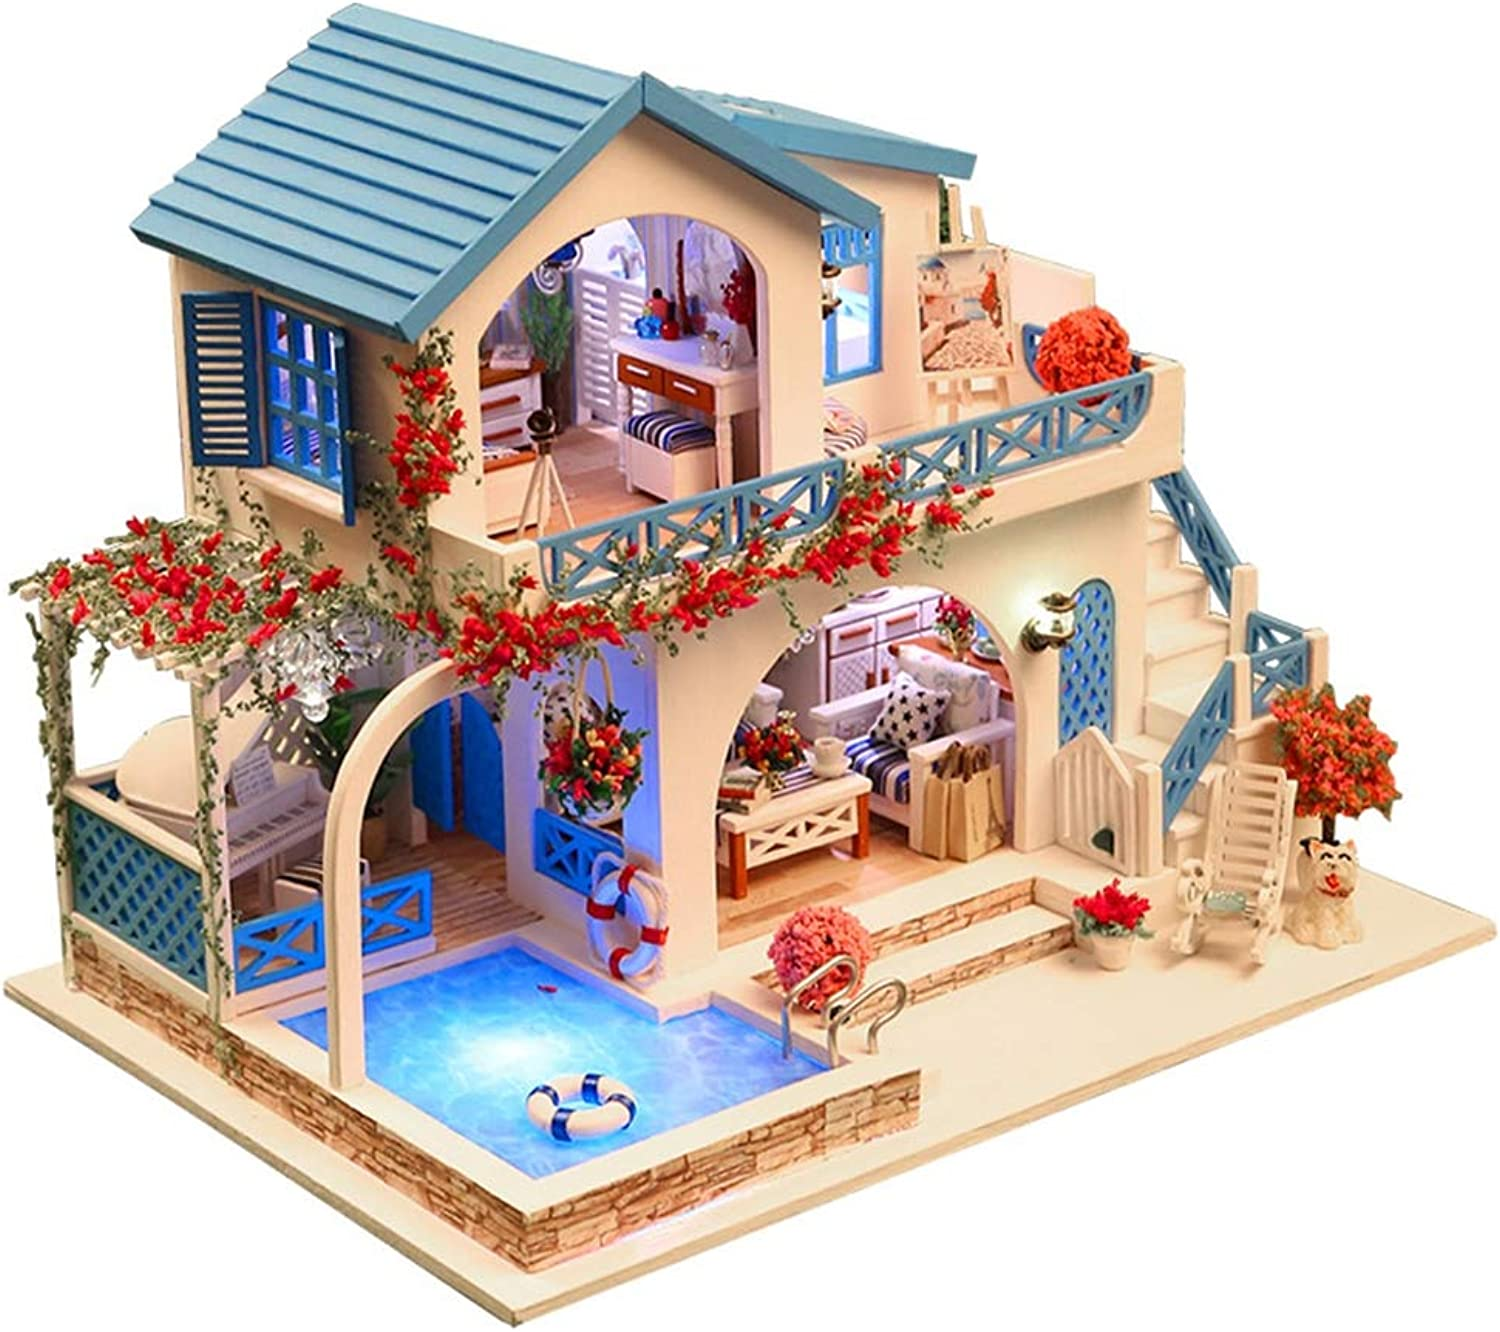 LSQR Home Decoration DIY 3D Doll House Wooden DIY Doll Houses Furniture Kit DIY Puzzle Assemble Dollhouse Girl Holiday Birthday Best Toys Gift